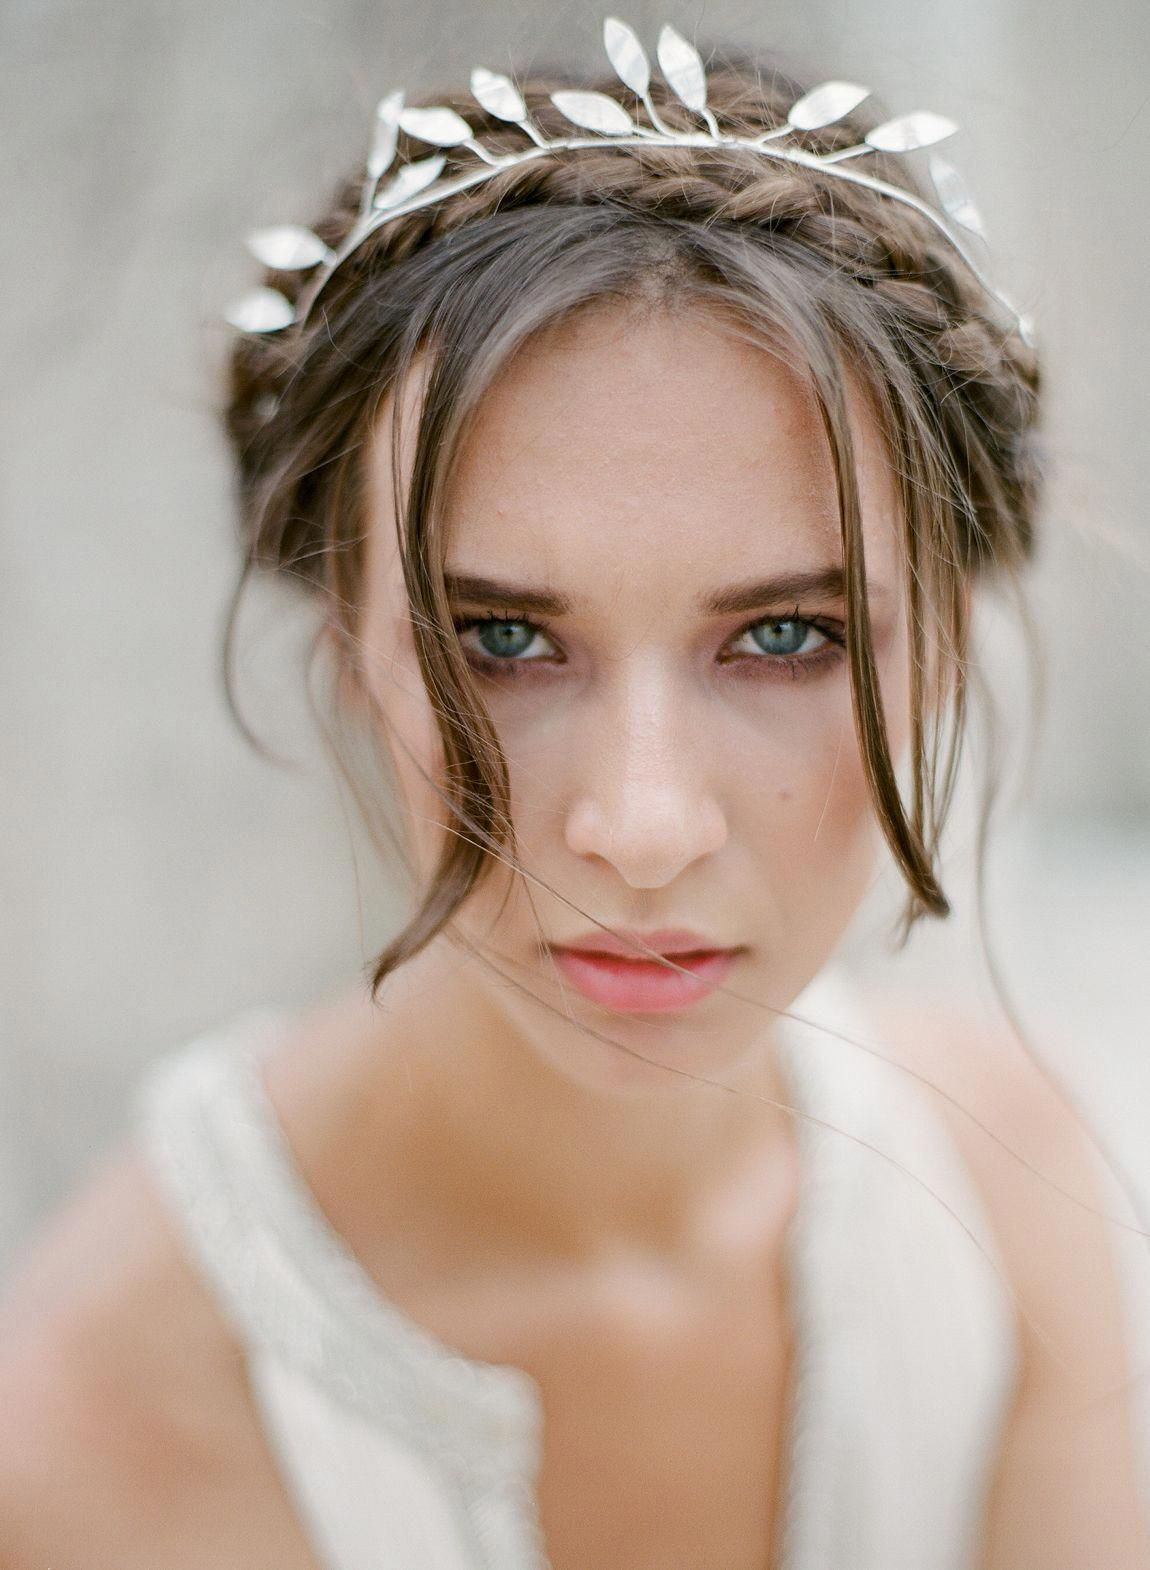 The olivia headband handcrafted in the studio from olive leaves as